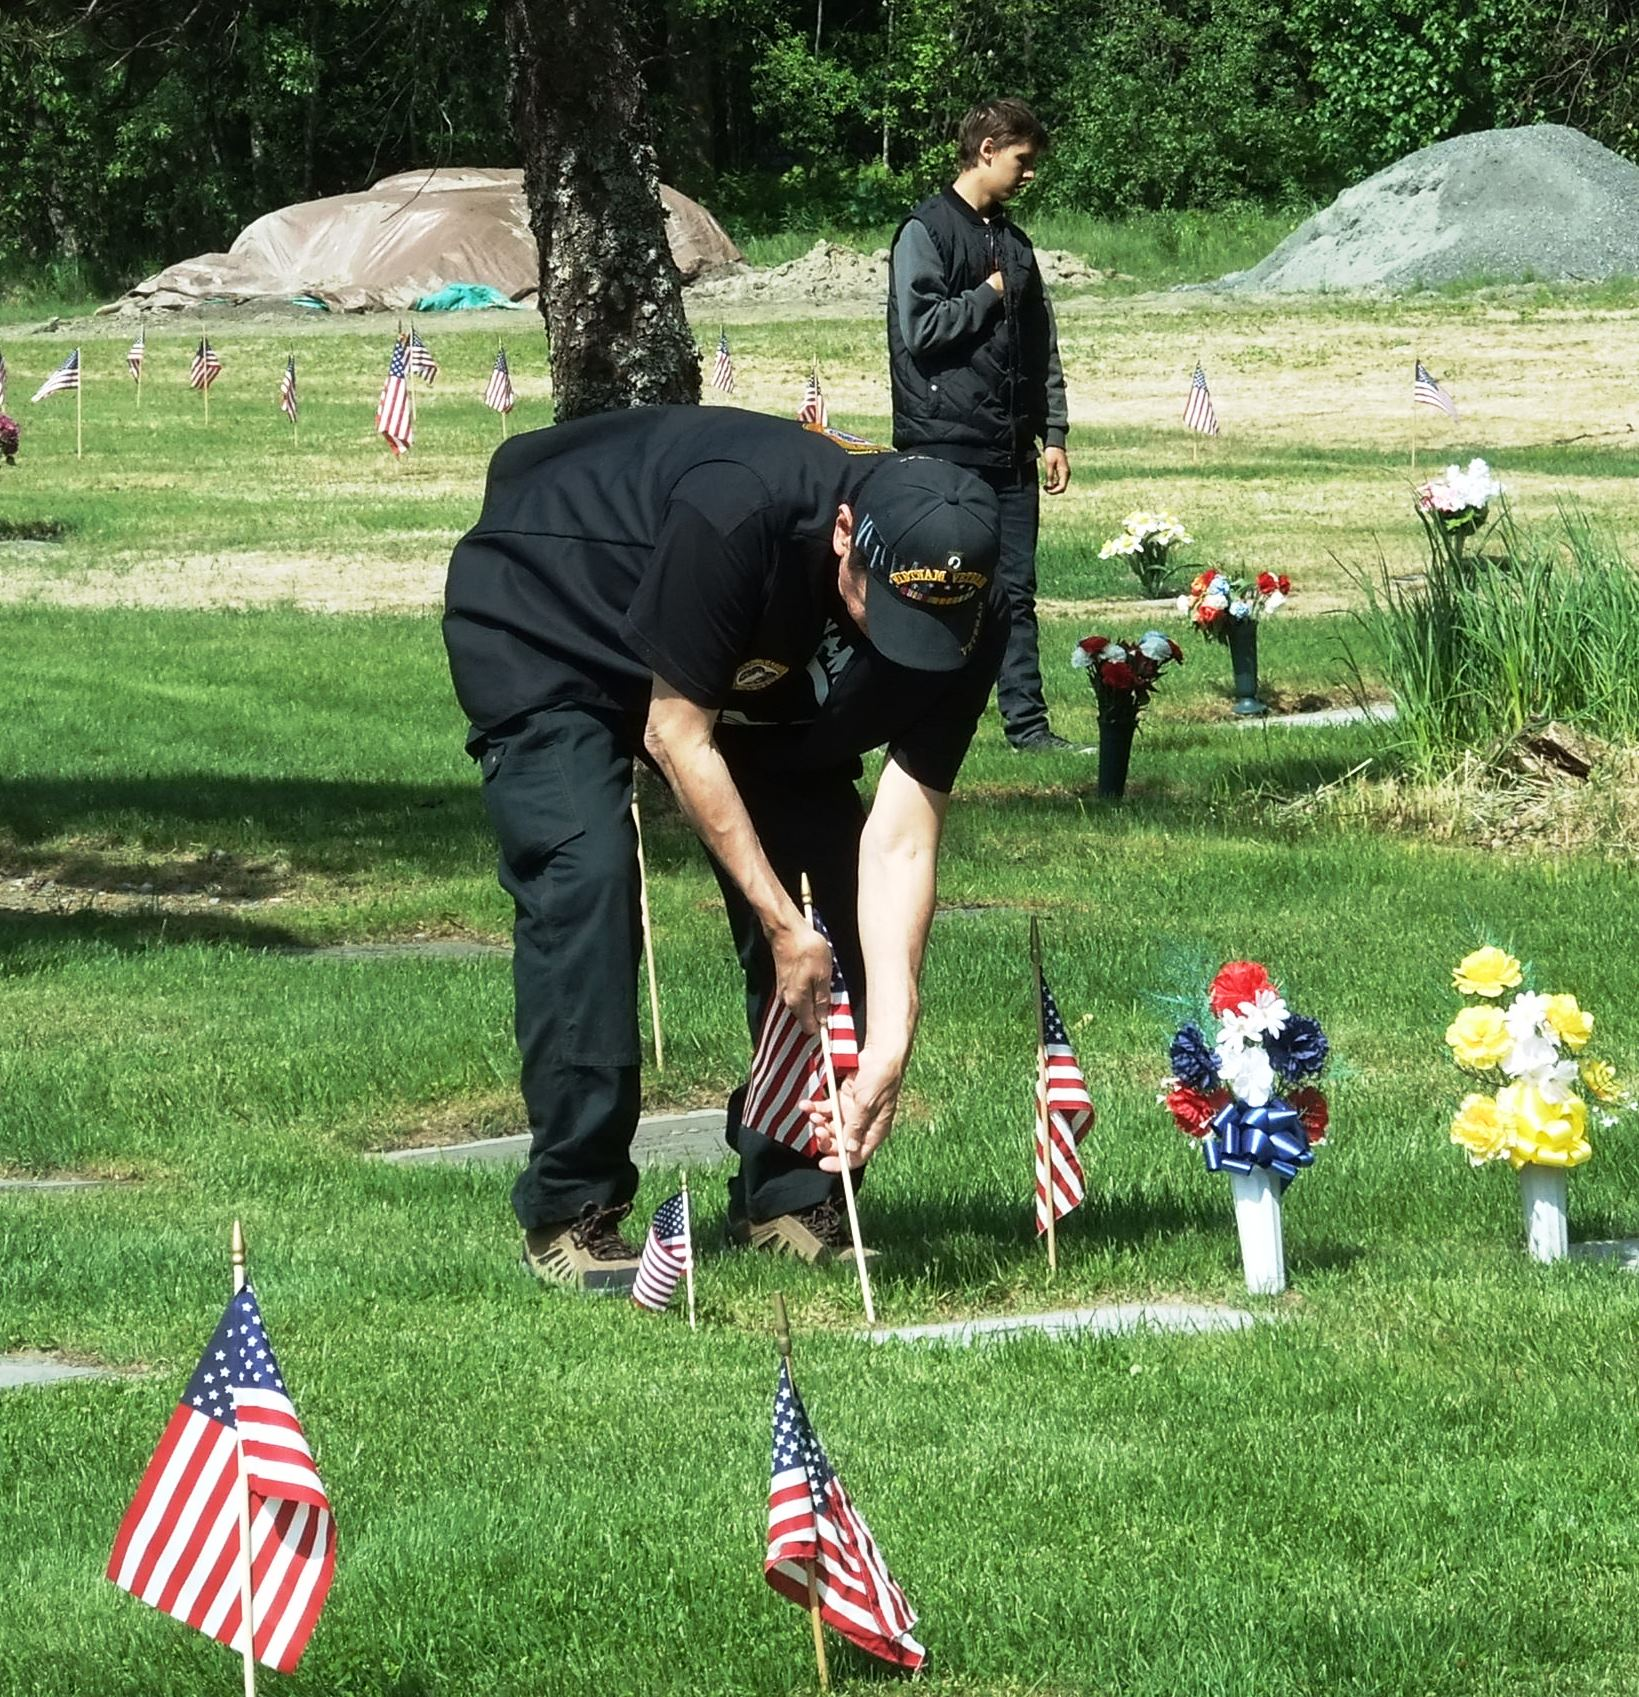 A veteran places a small flag near a grave stone on Memorial Day at Alaskan Memorial Park on Riverside Drive in Juneau. (Photo by Rosemarie Alexander/KTOO)